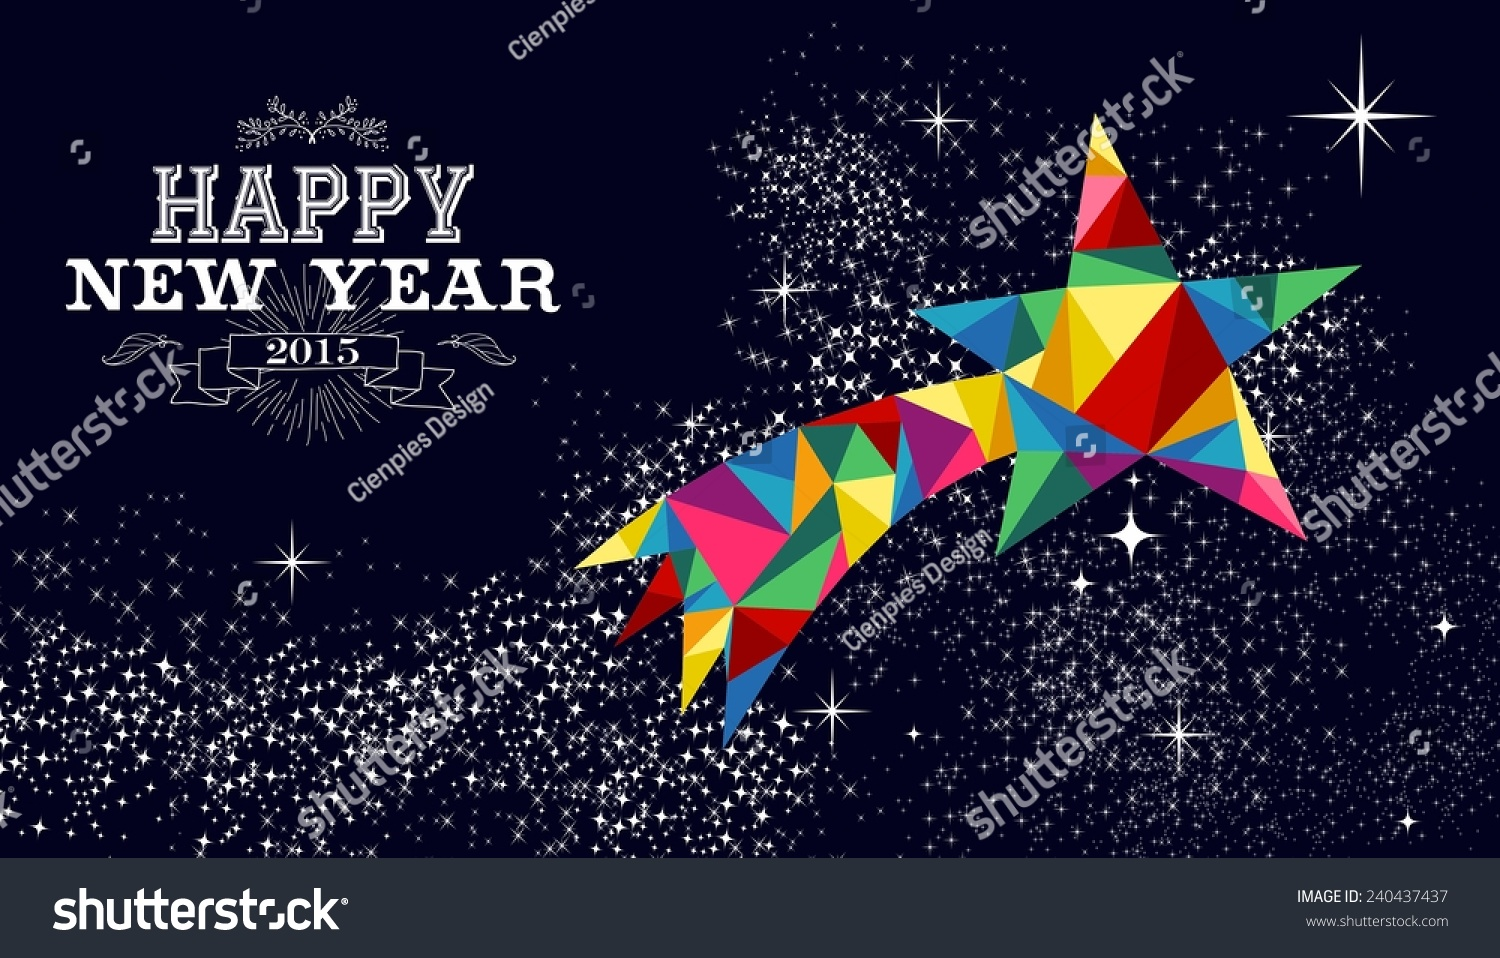 Happy New Year 2015 Greeting Card Stock Illustration 240437437